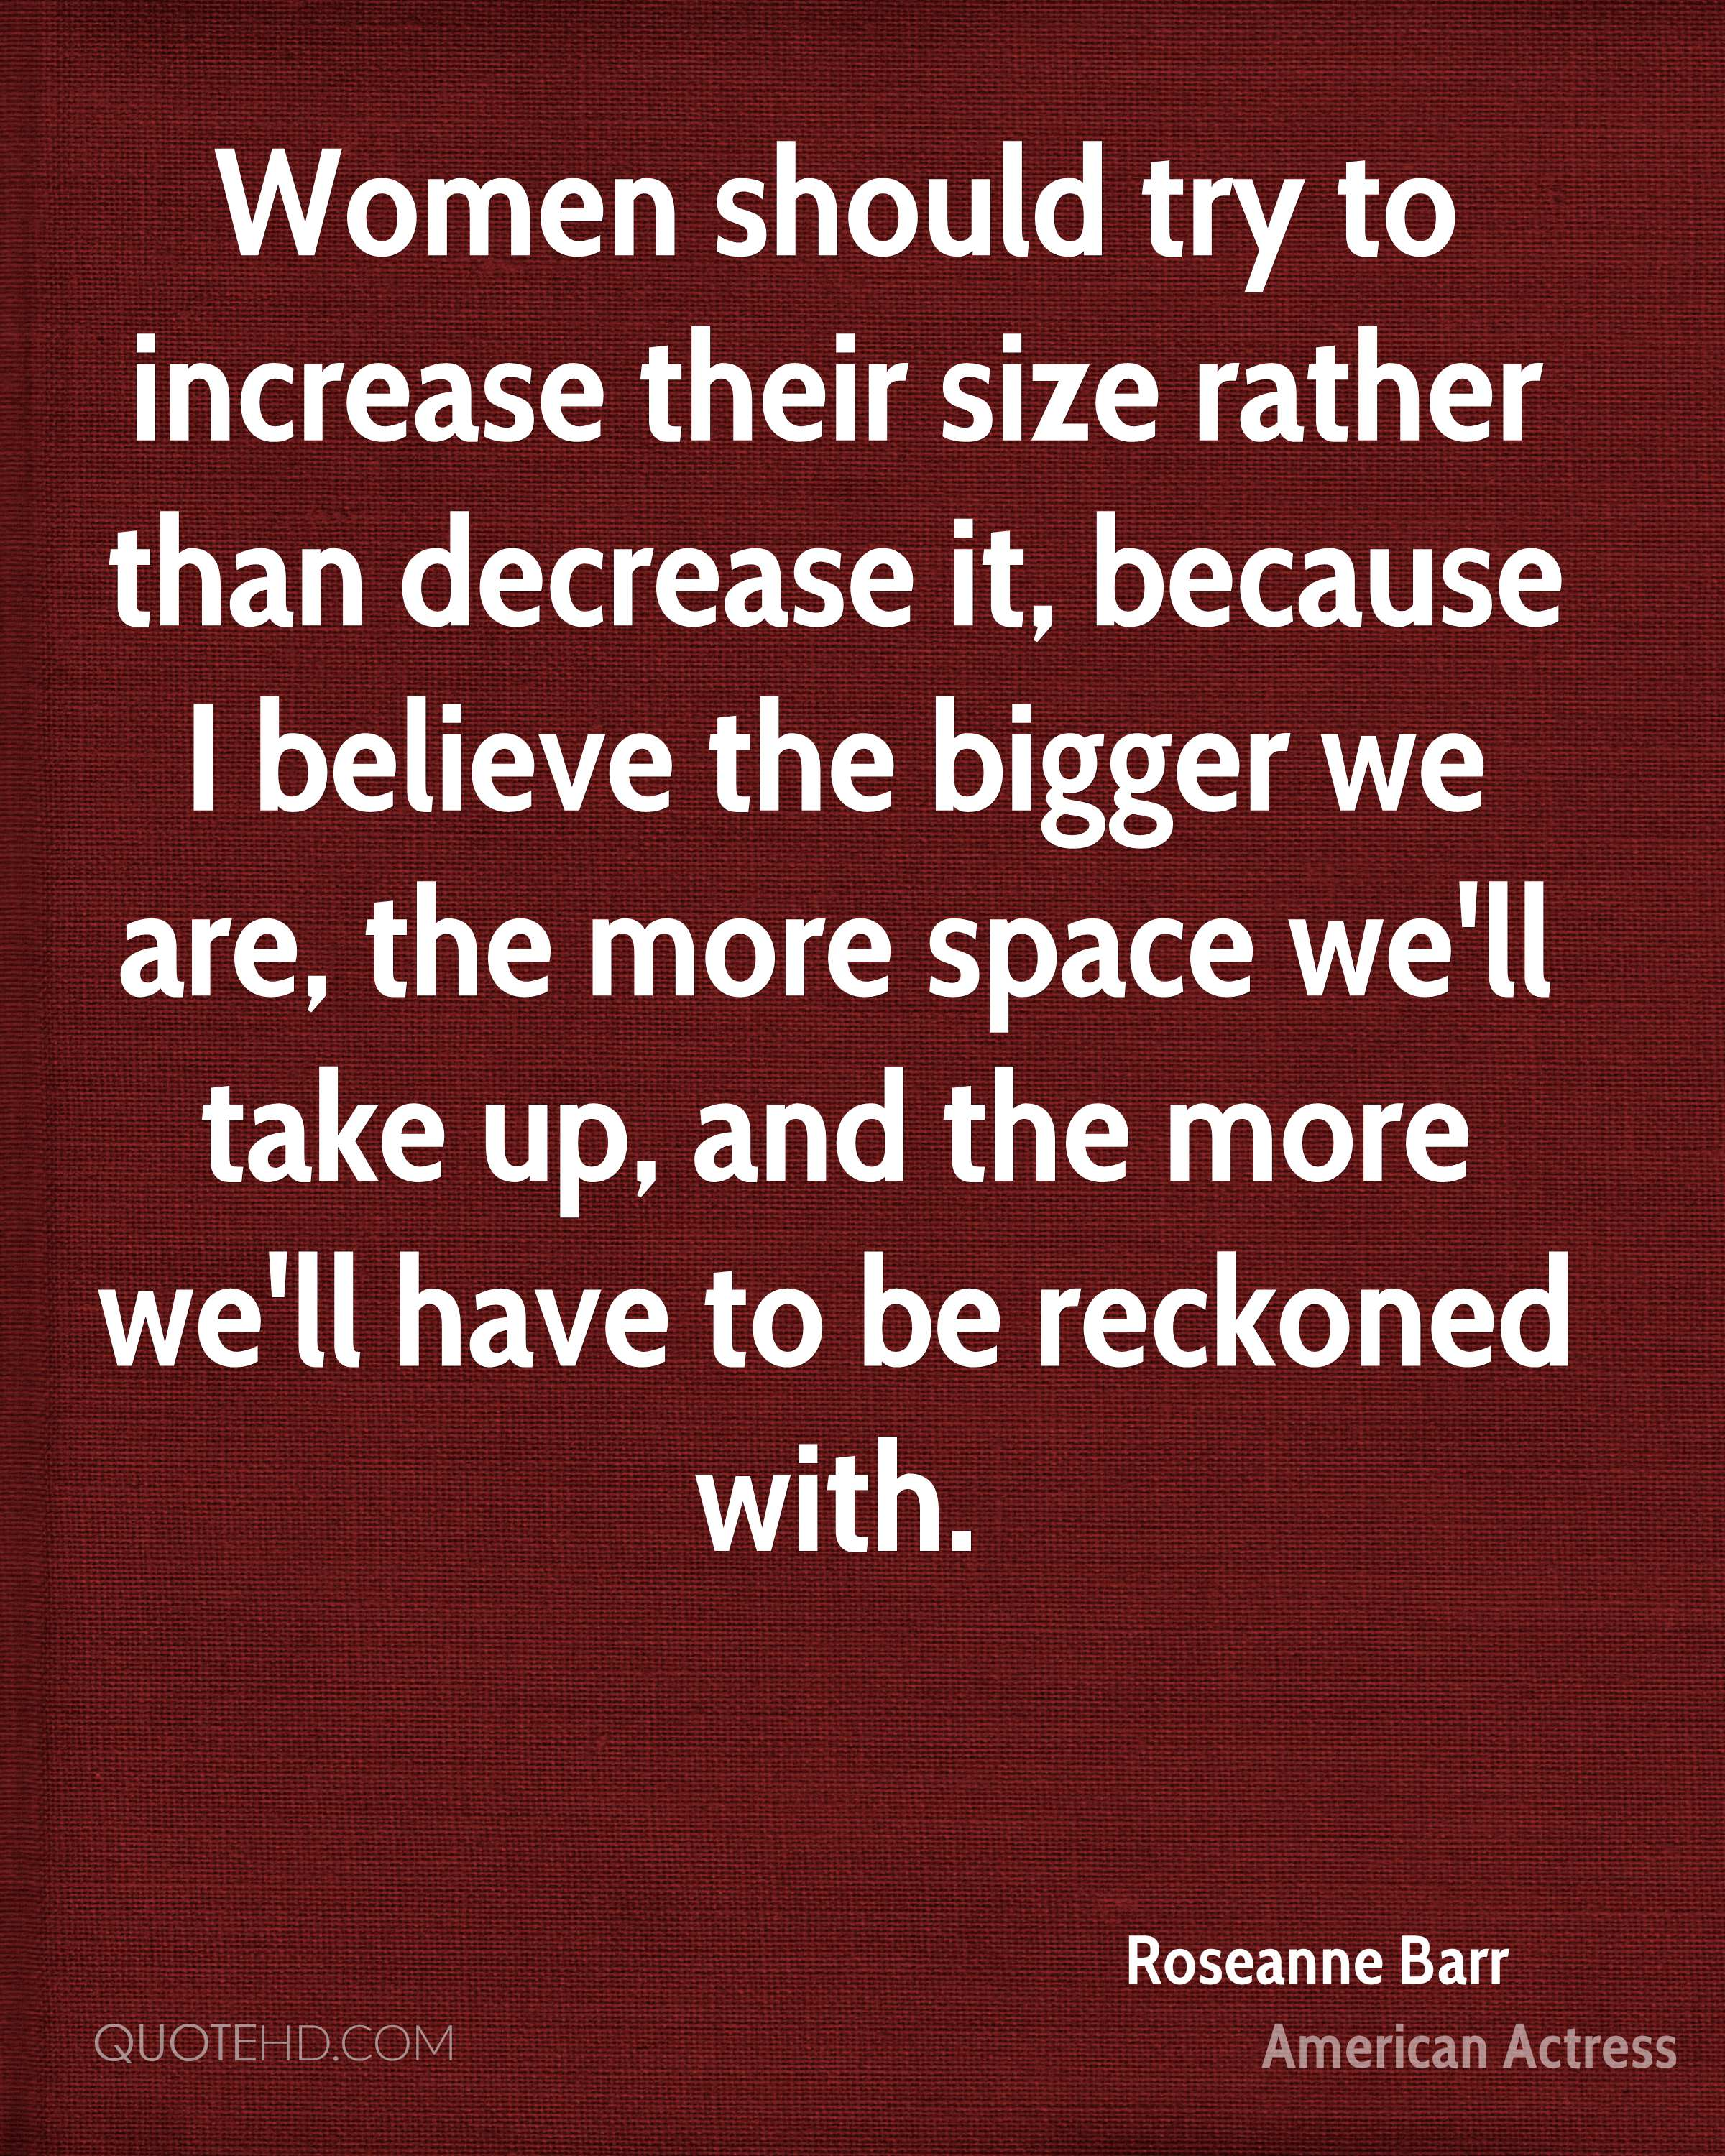 Women should try to increase their size rather than decrease it, because I believe the bigger we are, the more space we'll take up, and the more we'll have to be reckoned with.